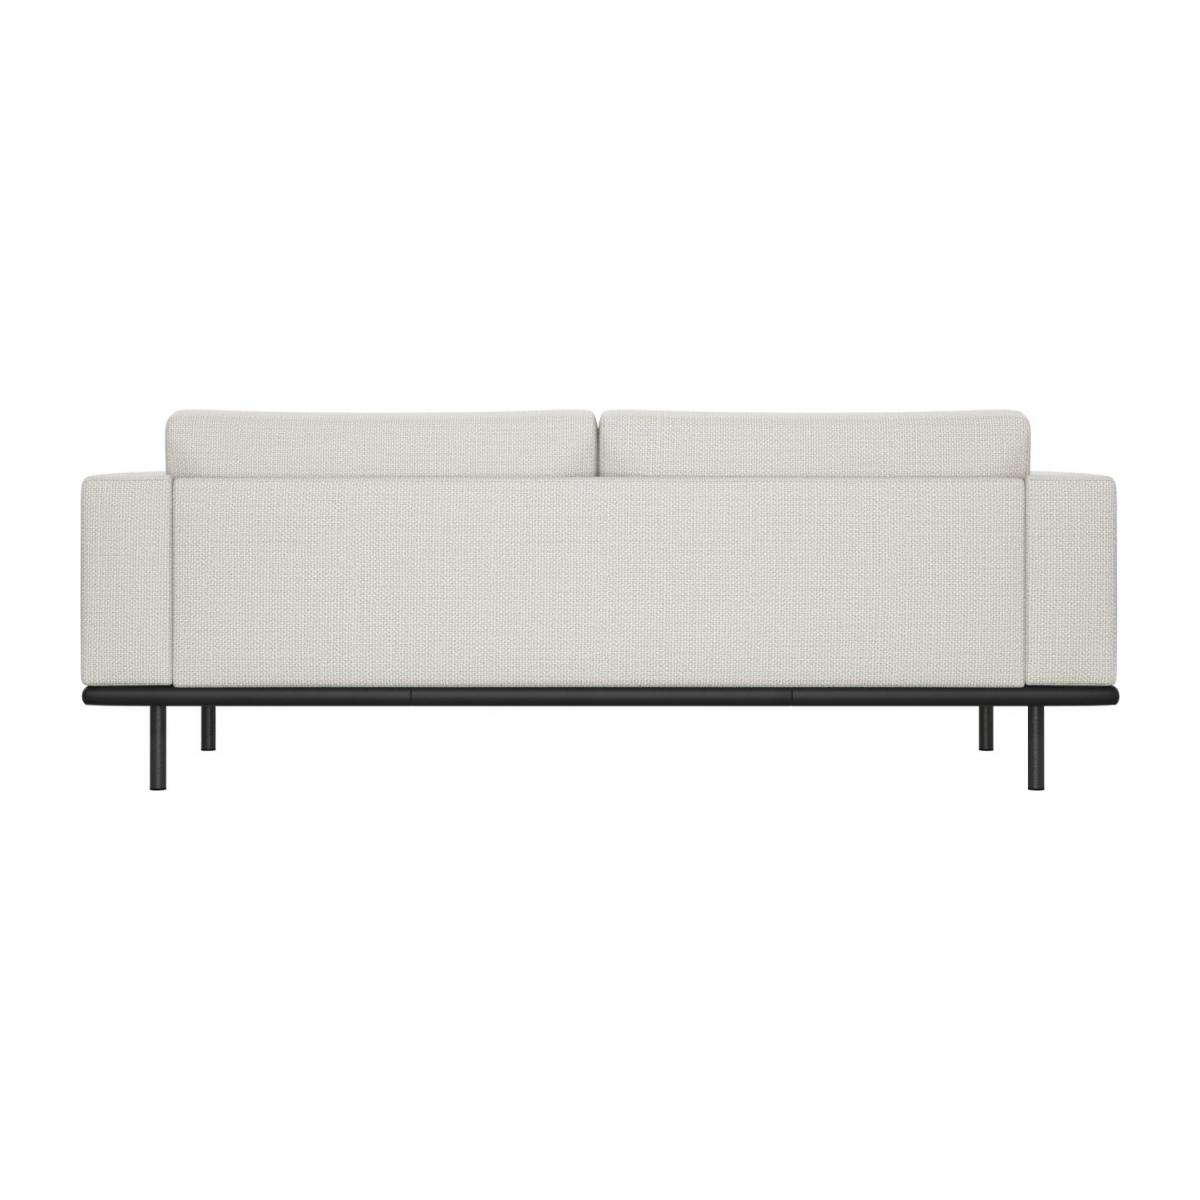 3 seater sofa in Fasoli fabric, snow white with base in black leather n°4